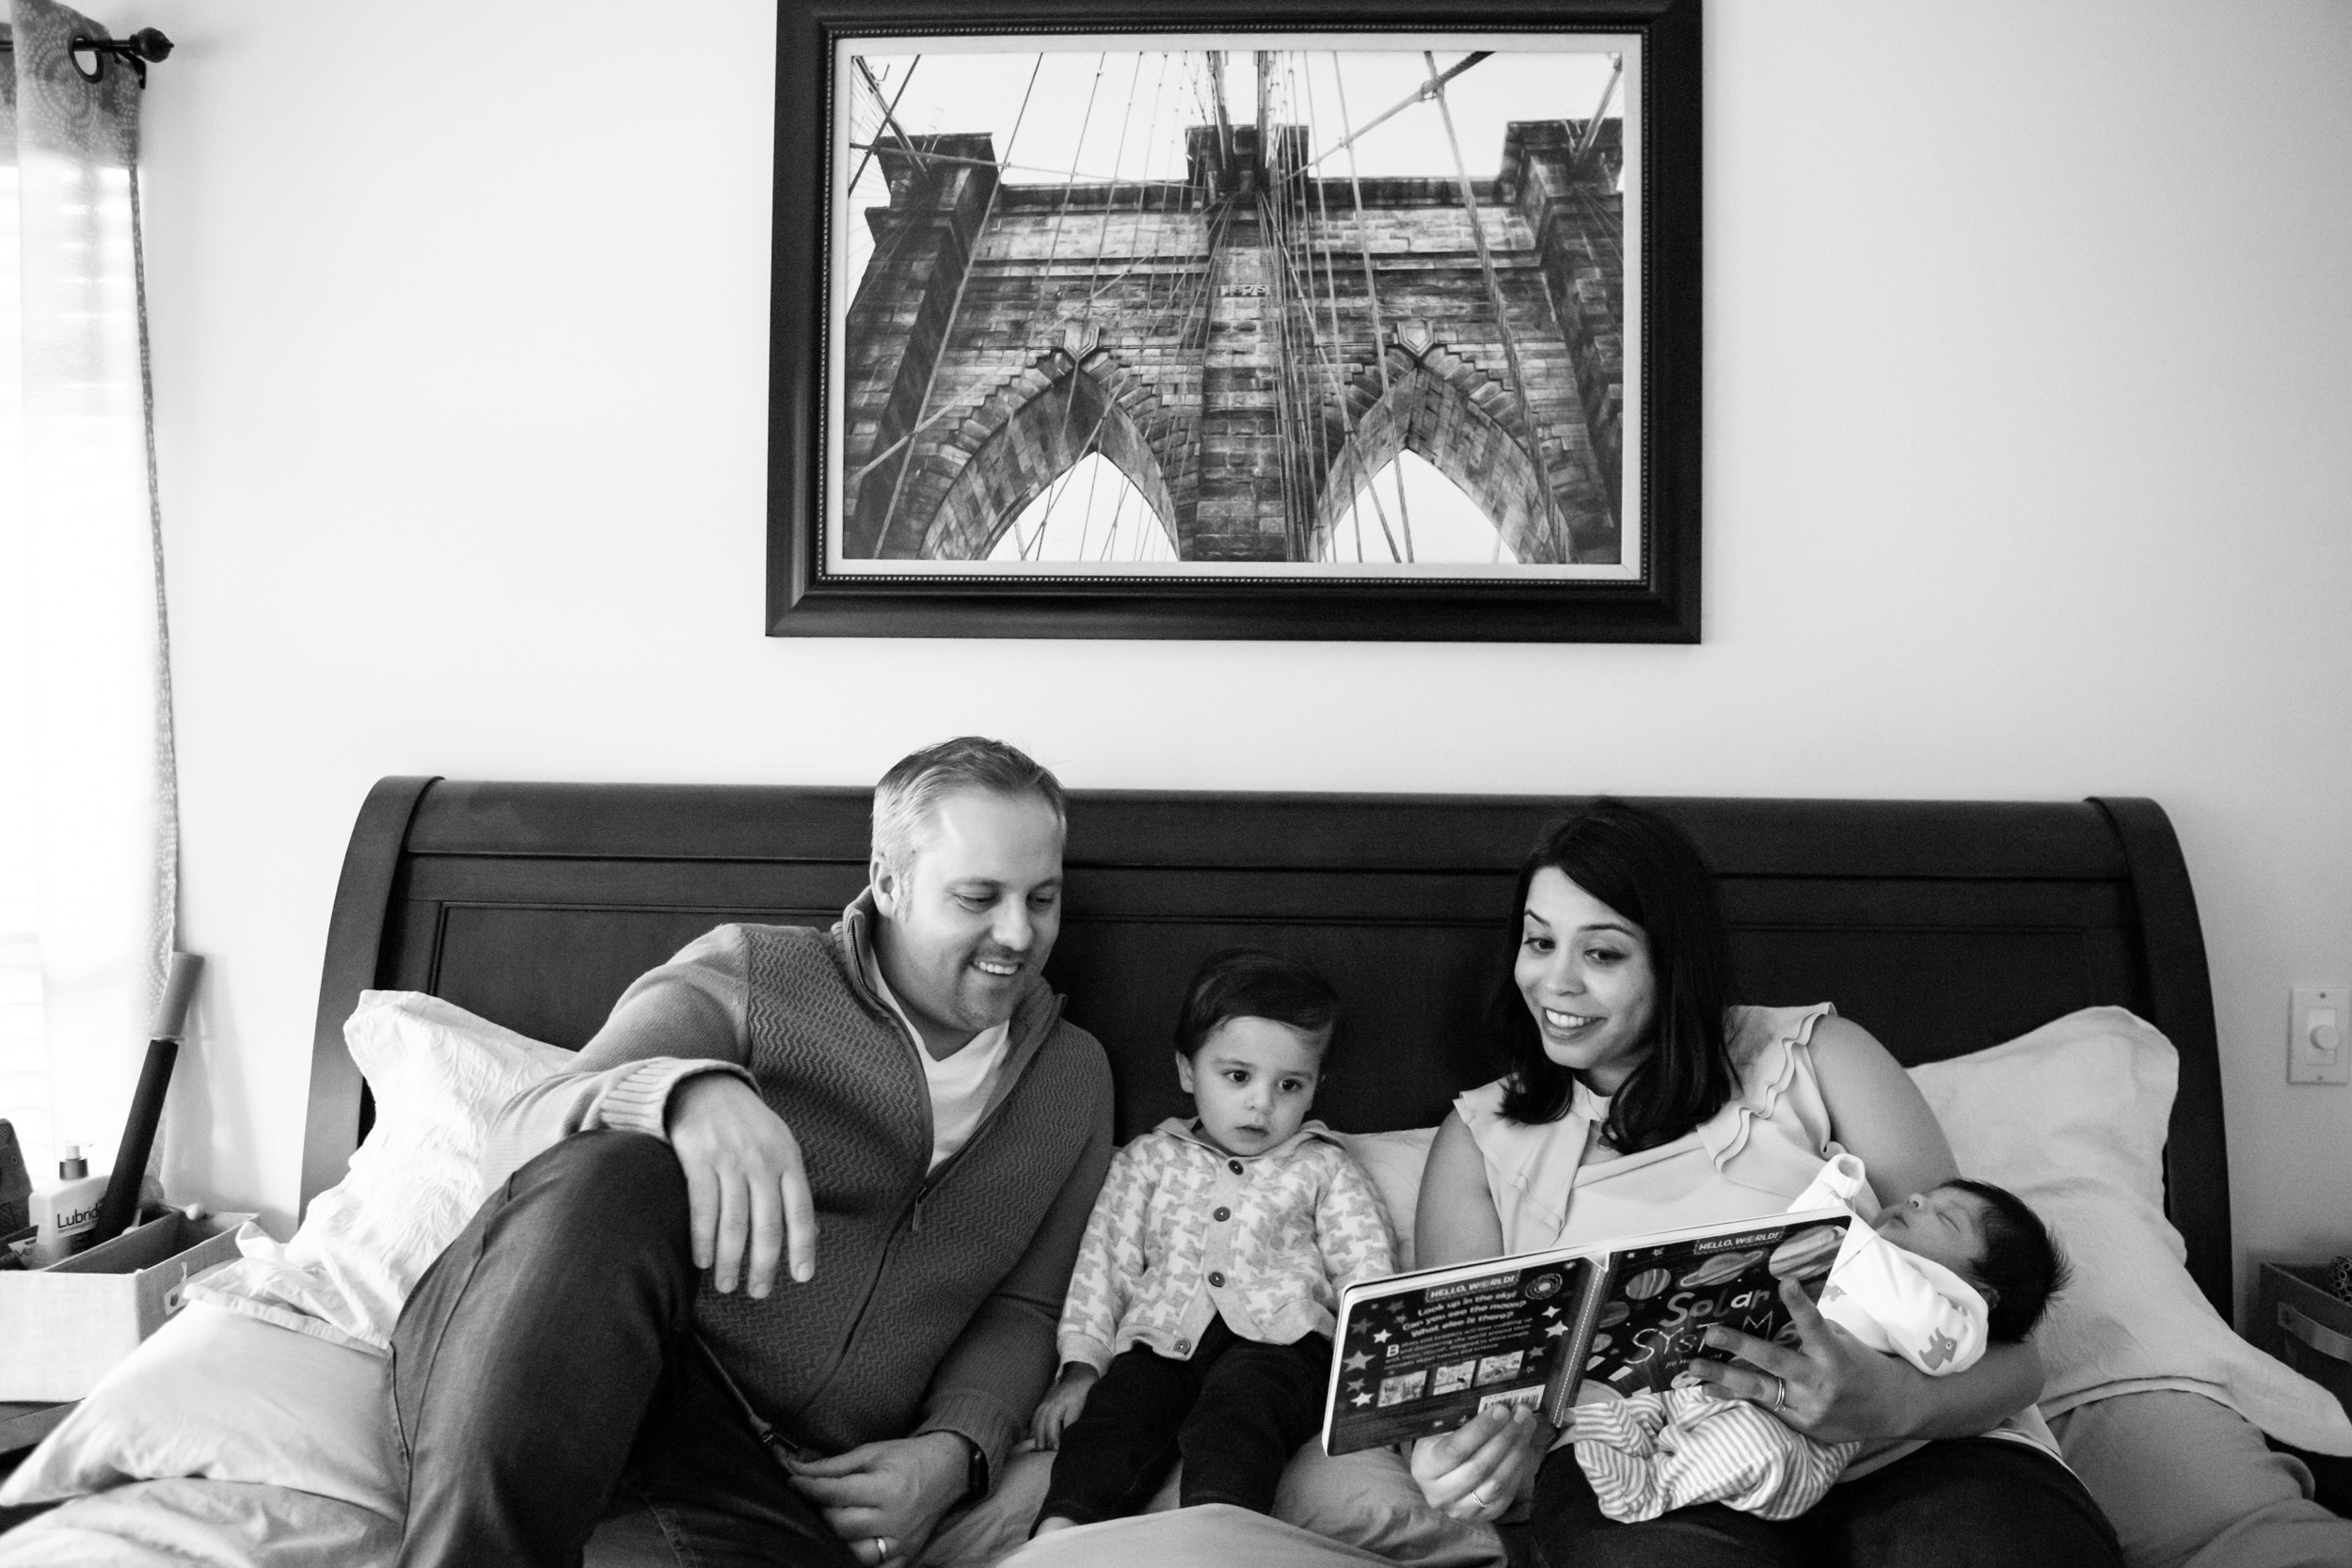 family with two small children reading a book